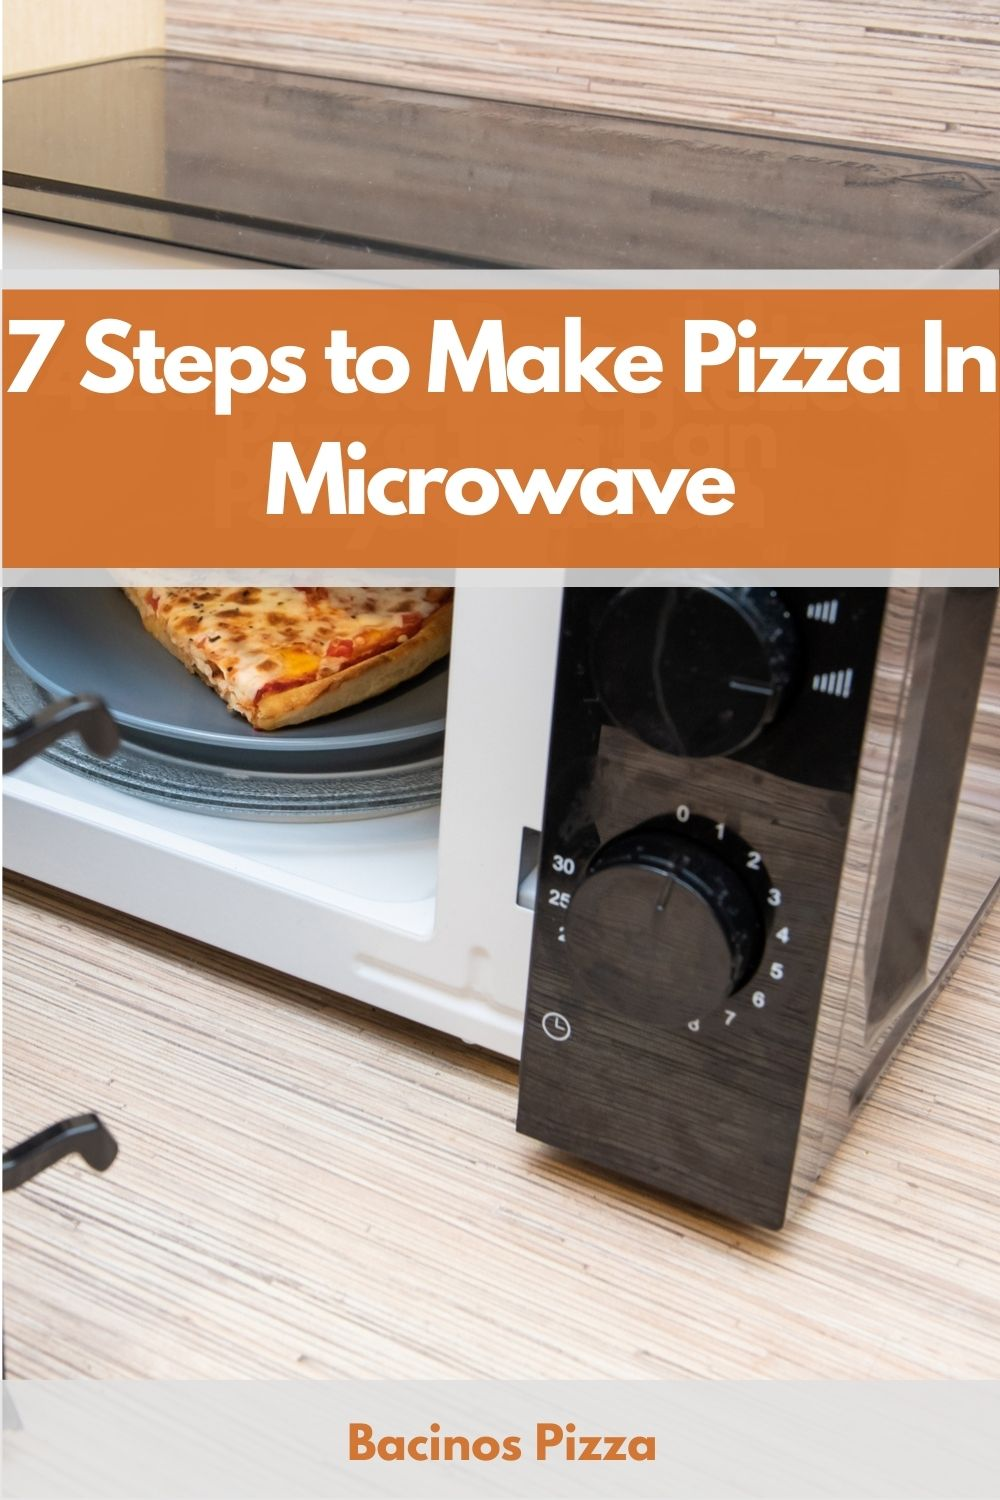 7 Steps to Make Pizza In Microwave pin 2